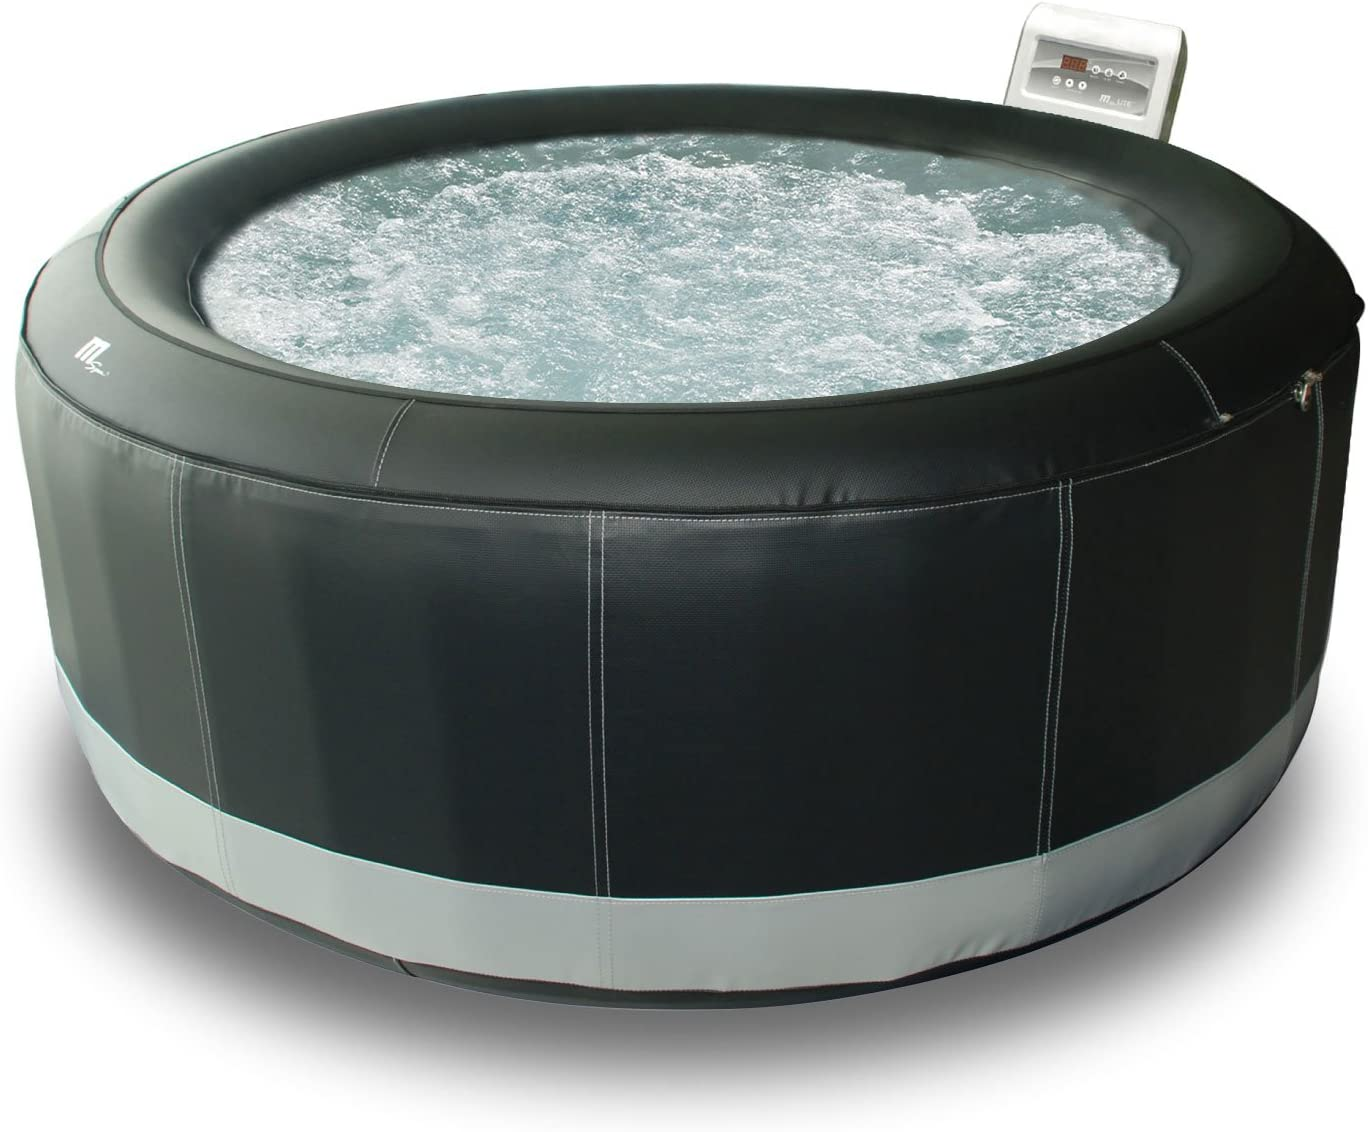 Happy Garden Spa Gonflable Rond Simili Cuir Super Camaro 6